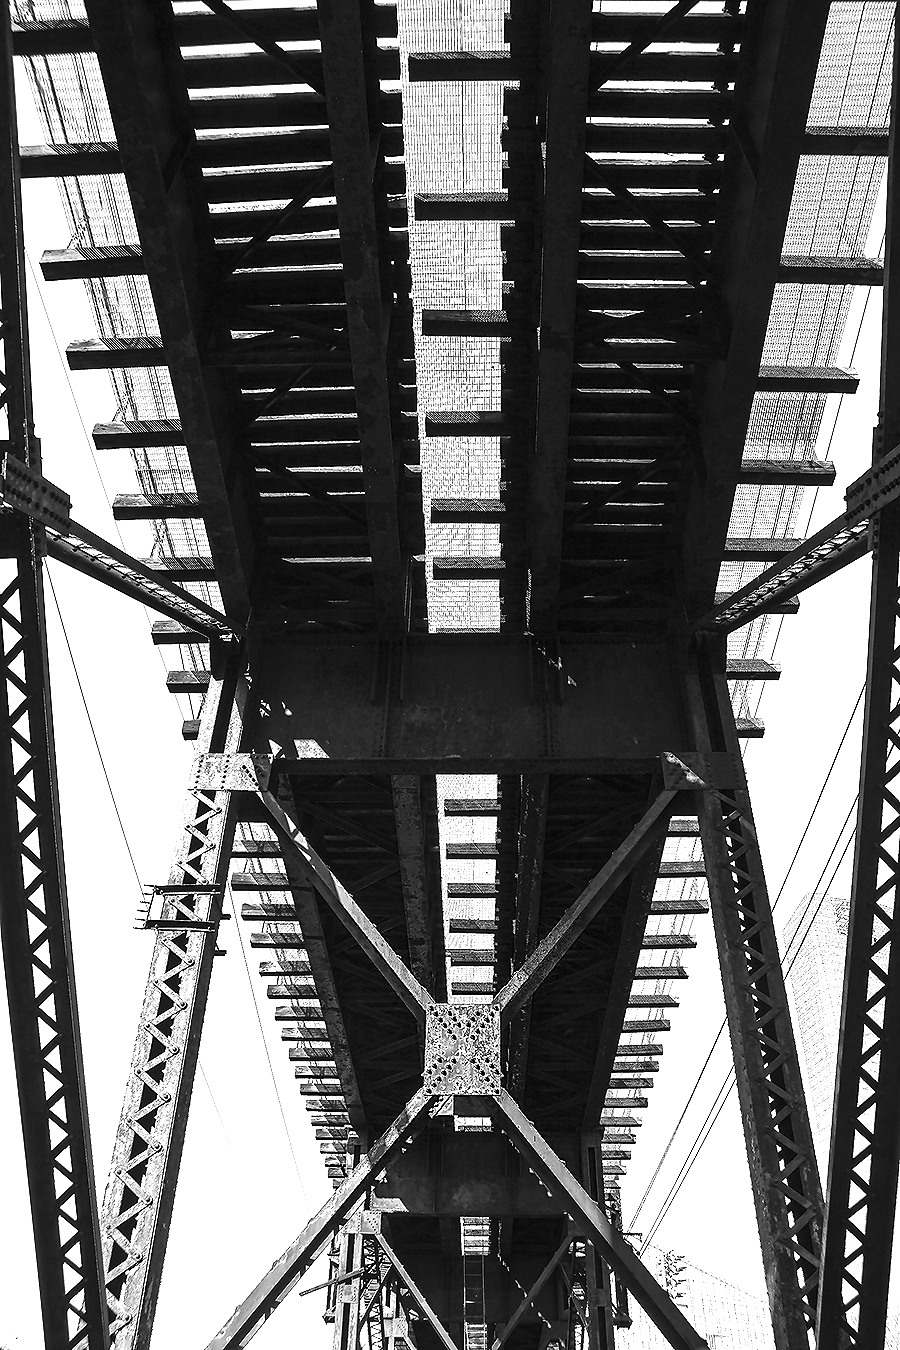 Janelle_Tong_Photography_Tony_Ward_Studio_Individual_Project_UPenn_Penn_Park_Bridges_Railroad_Tracks_Underneath_Rust_Structure_Black_and_White_1